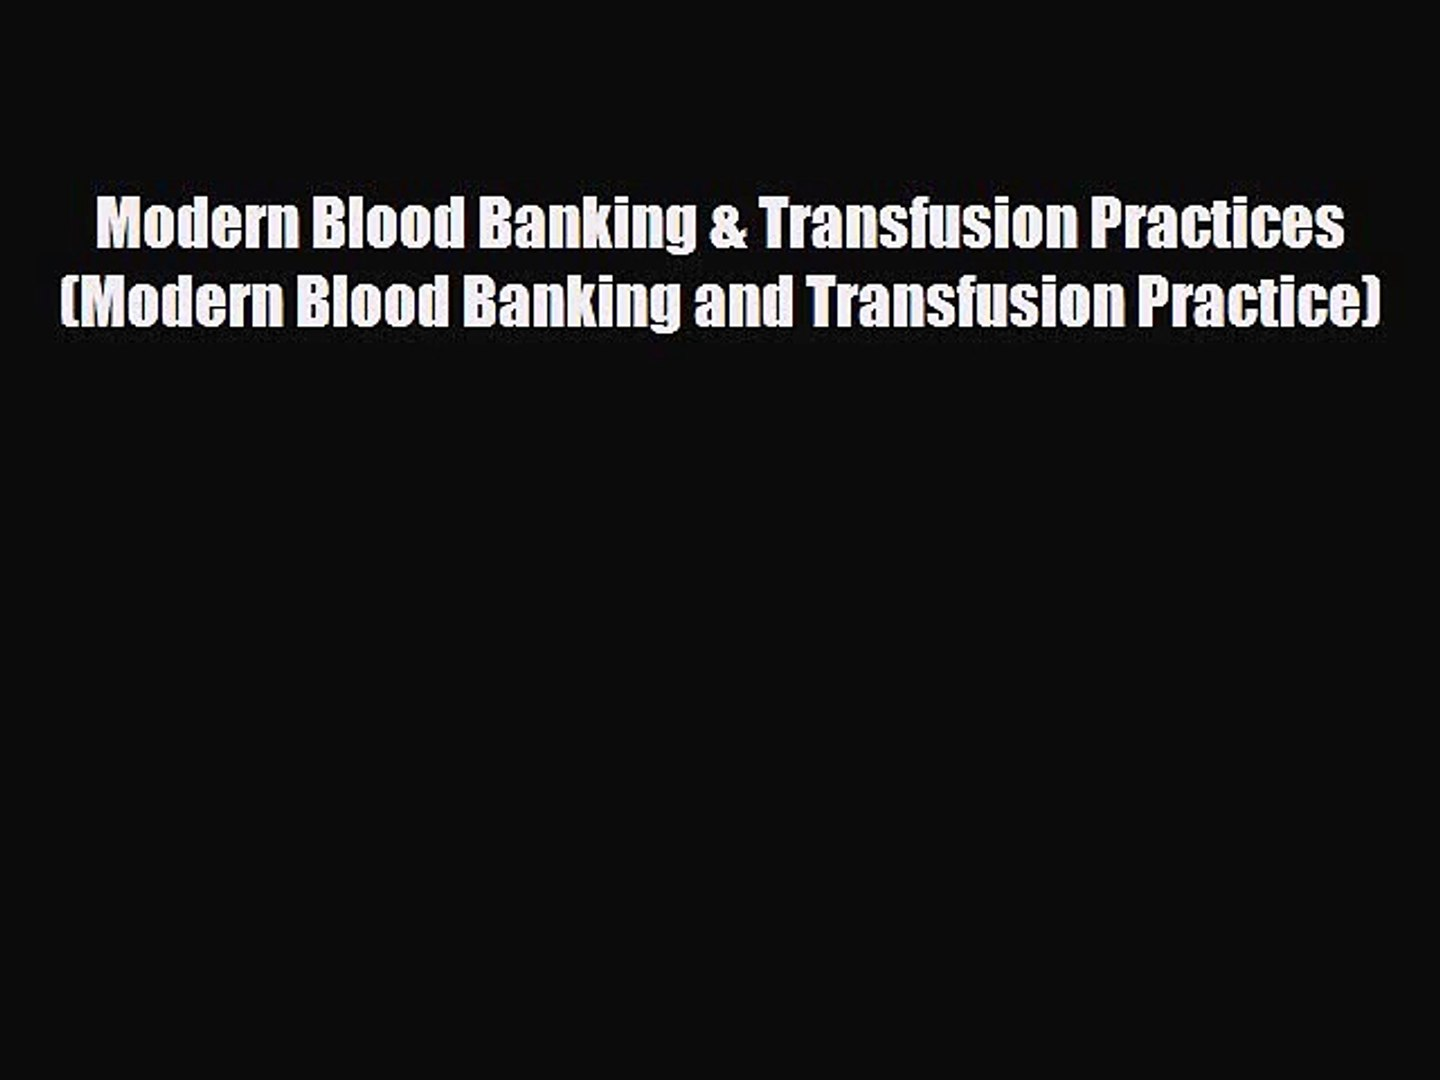 PDF Download Modern Blood Banking & Transfusion Practices (Modern Blood Banking and Transfusion